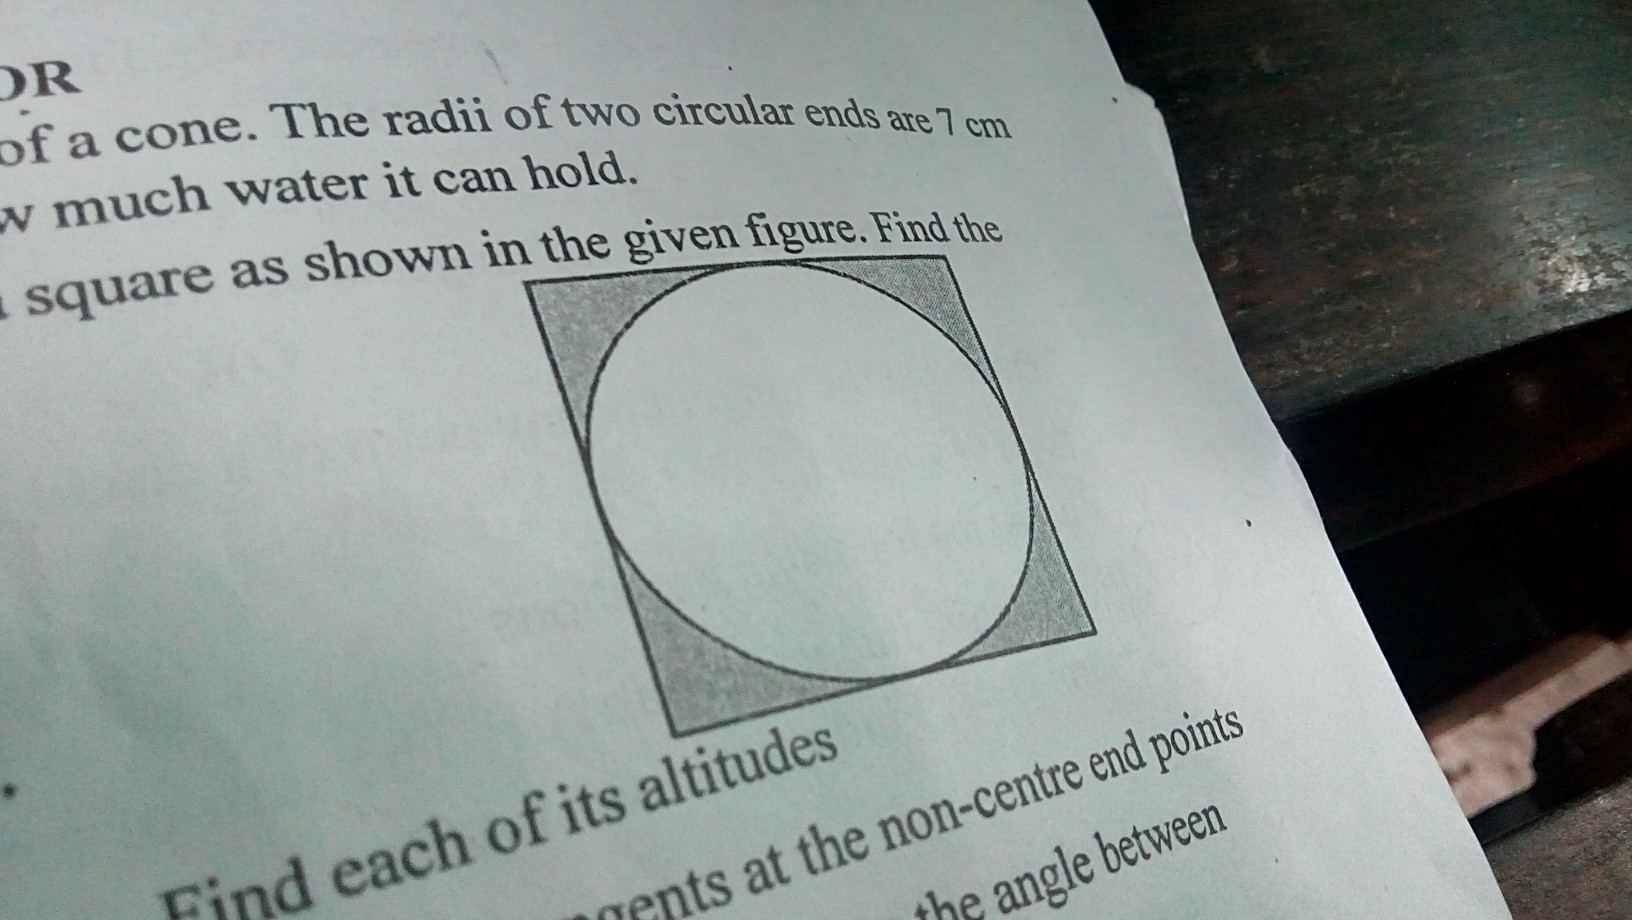 A Circle Of Radius 6 Cm Is Inscribed In A Square As Shown